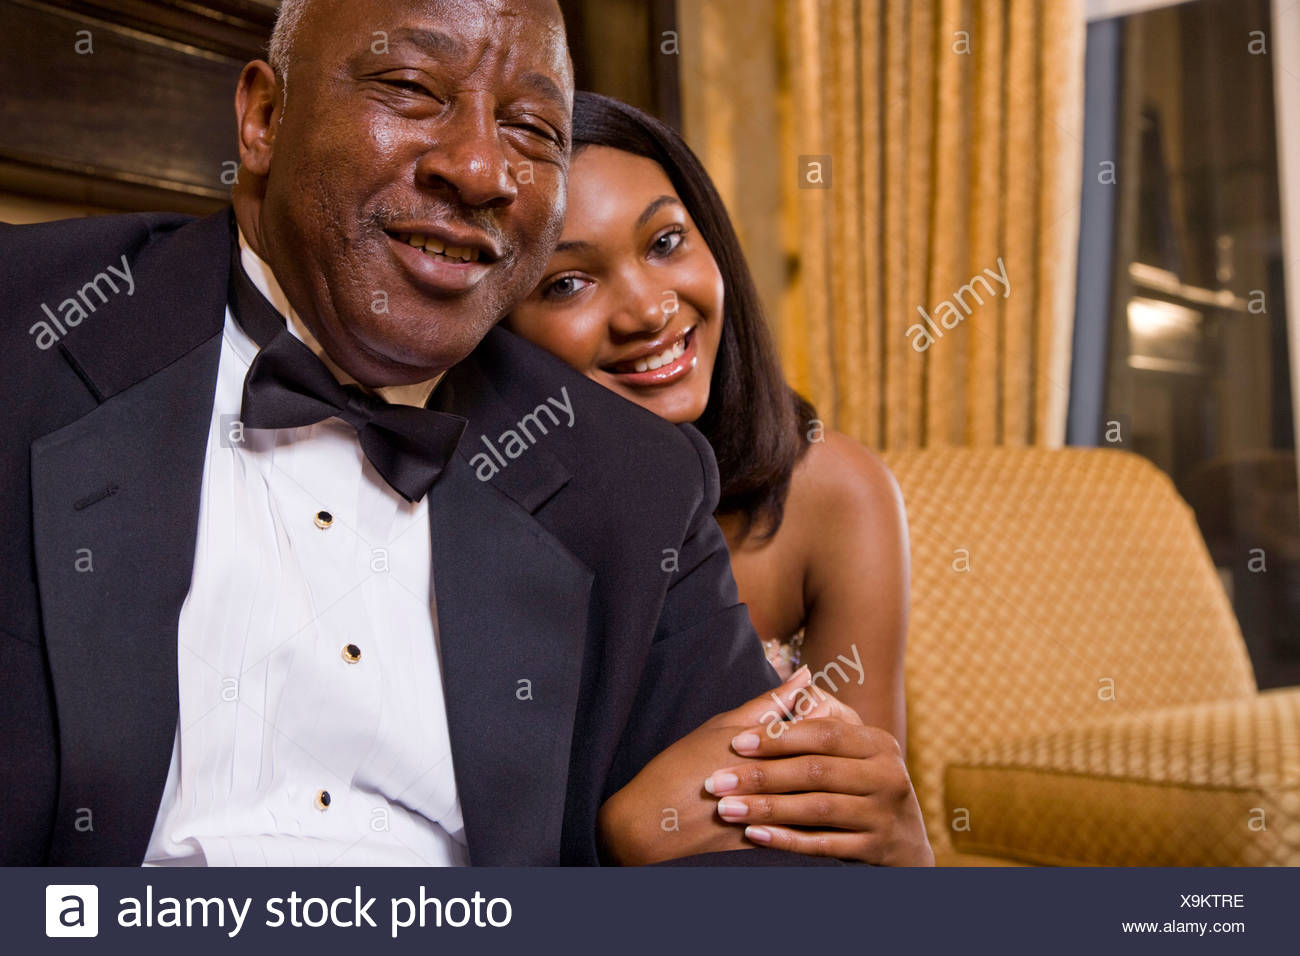 3c87ddff396 Teenage girl posing with grandfather in formal attire at home Stock ...